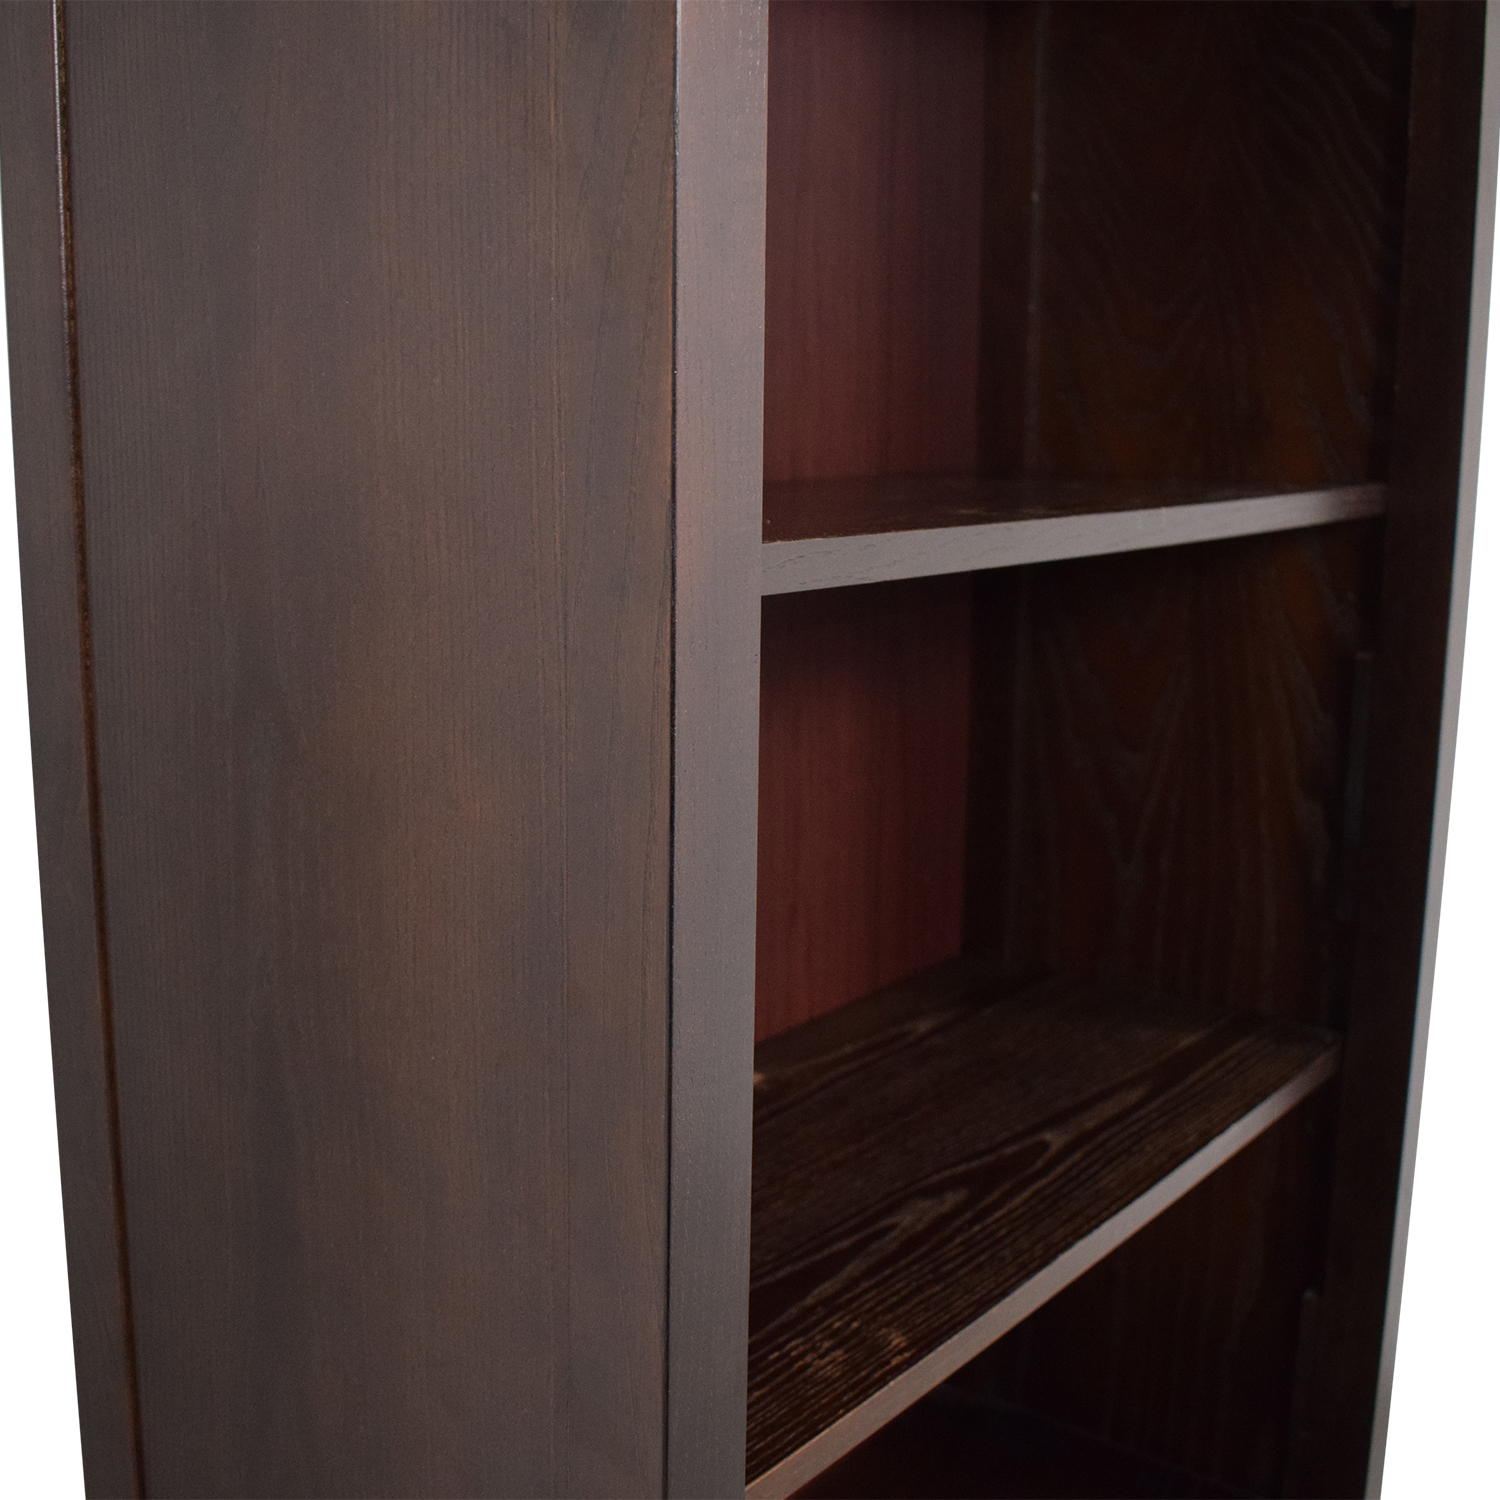 Stanley Furniture Stanley Furniture Bookshelf coupon